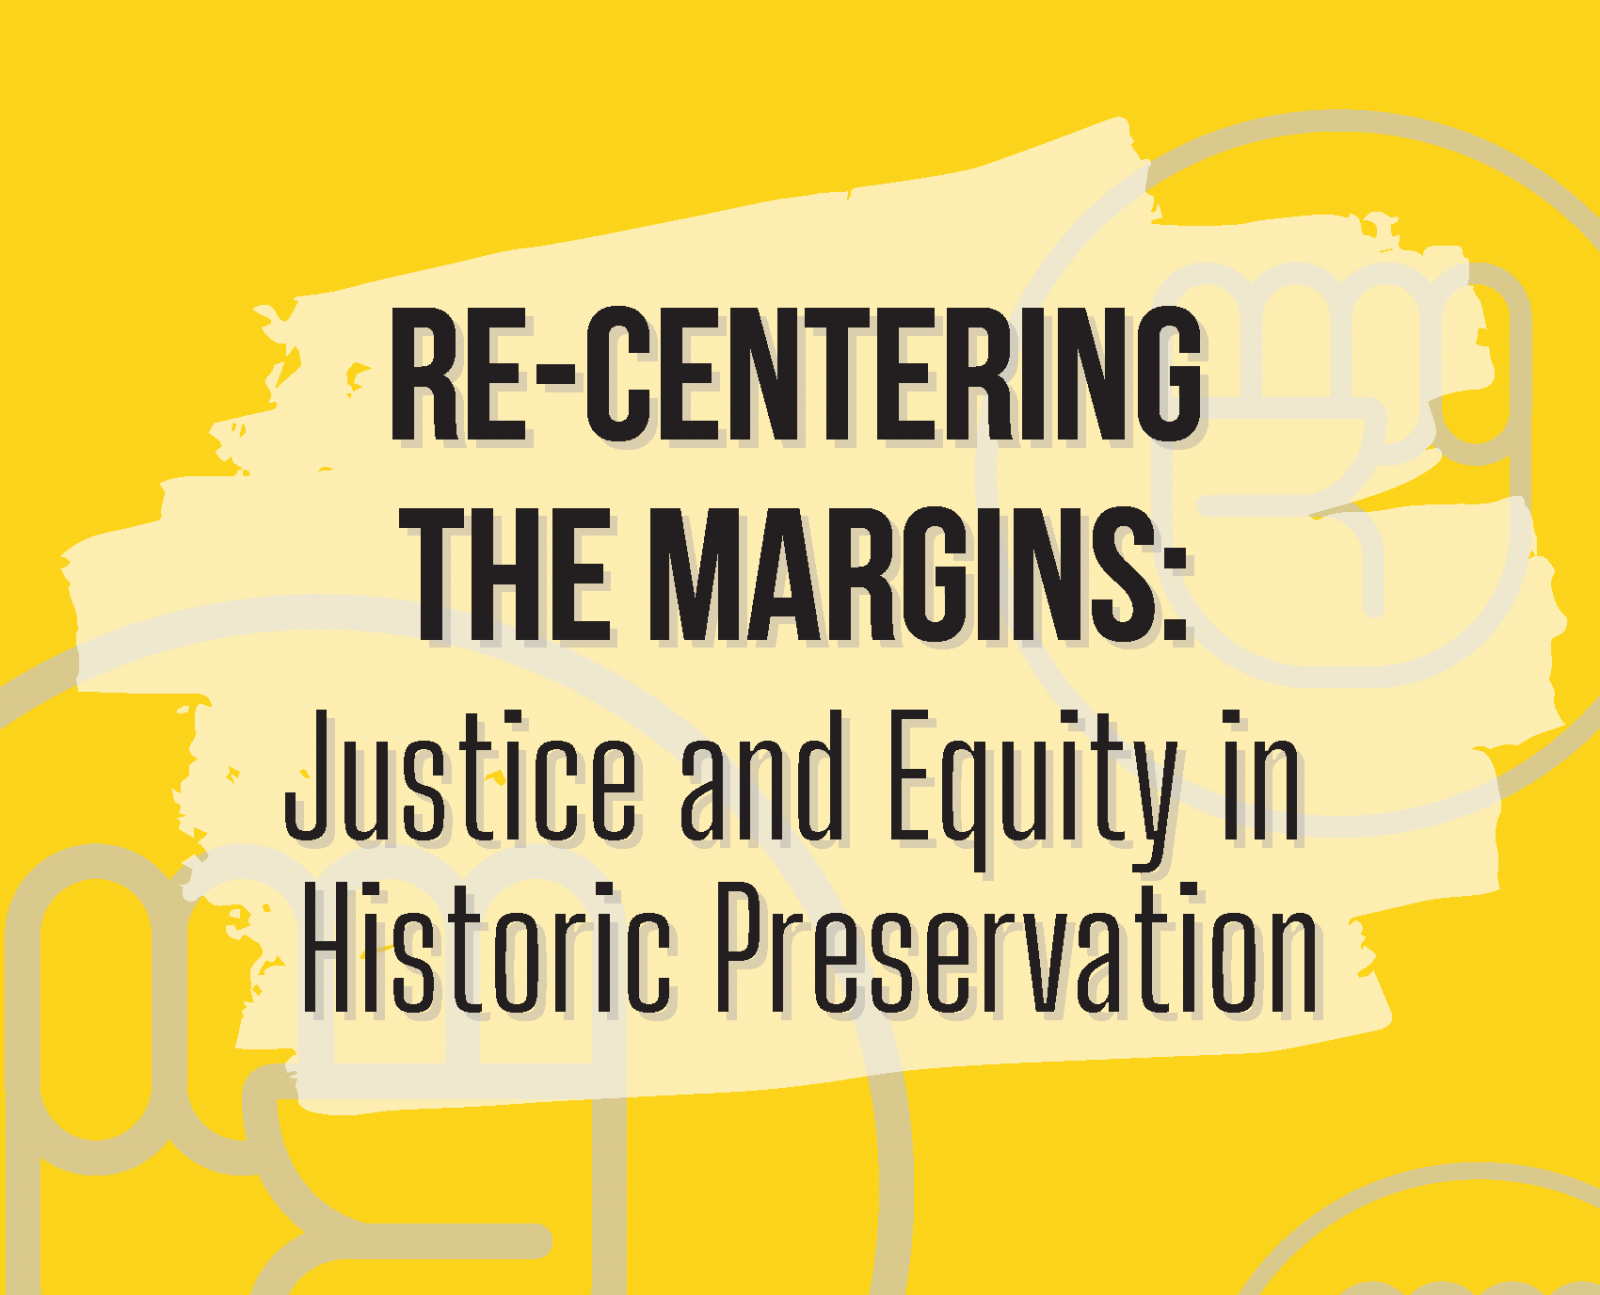 Re-Centering the Margins: Justice and Equity in Historic Preservation